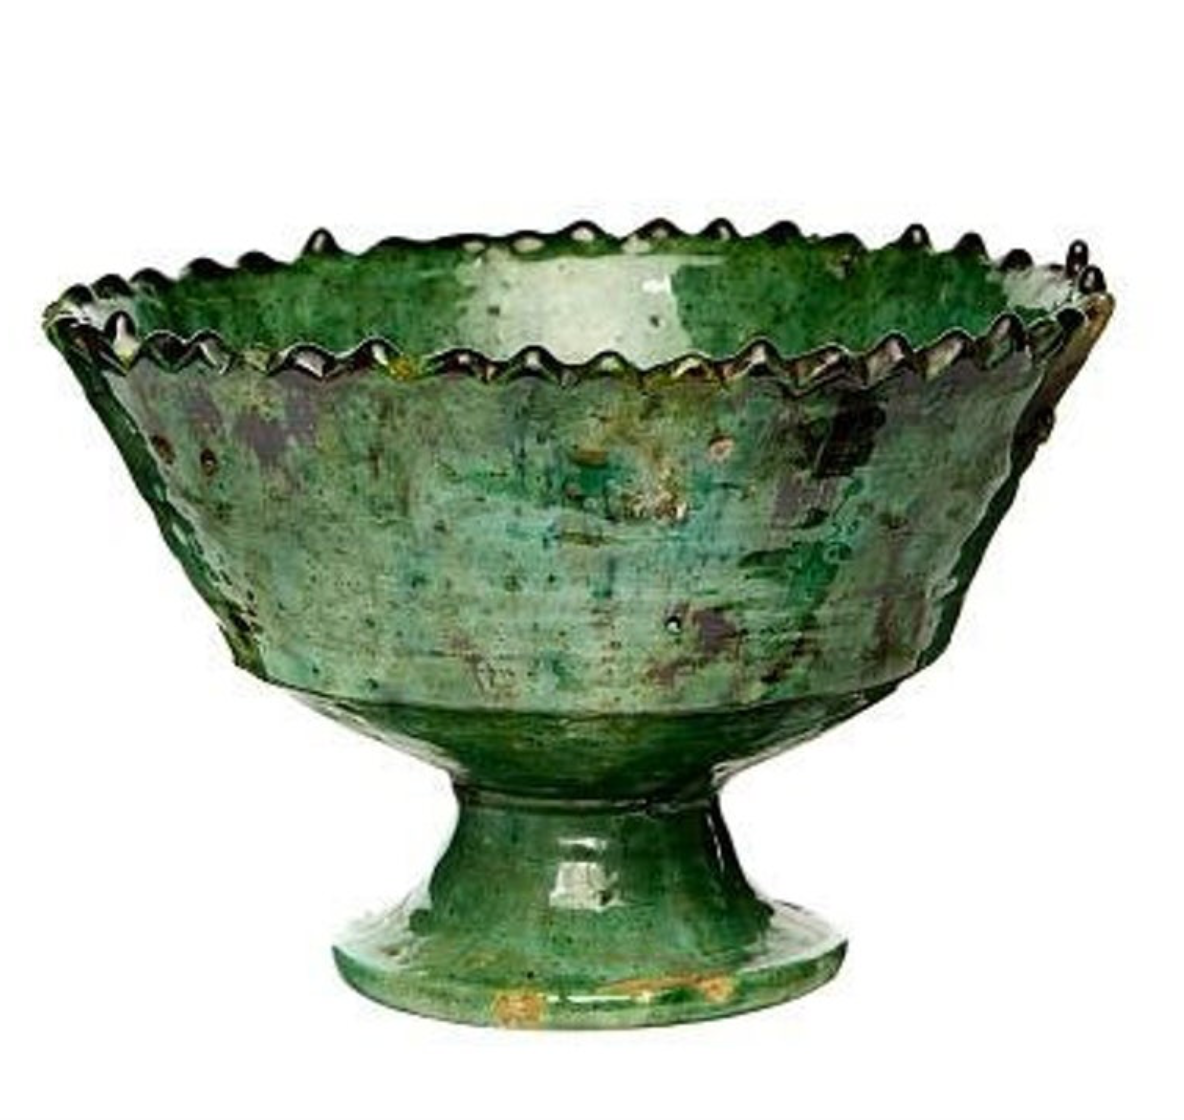 Handmade Moroccan Raised Bowl in Green